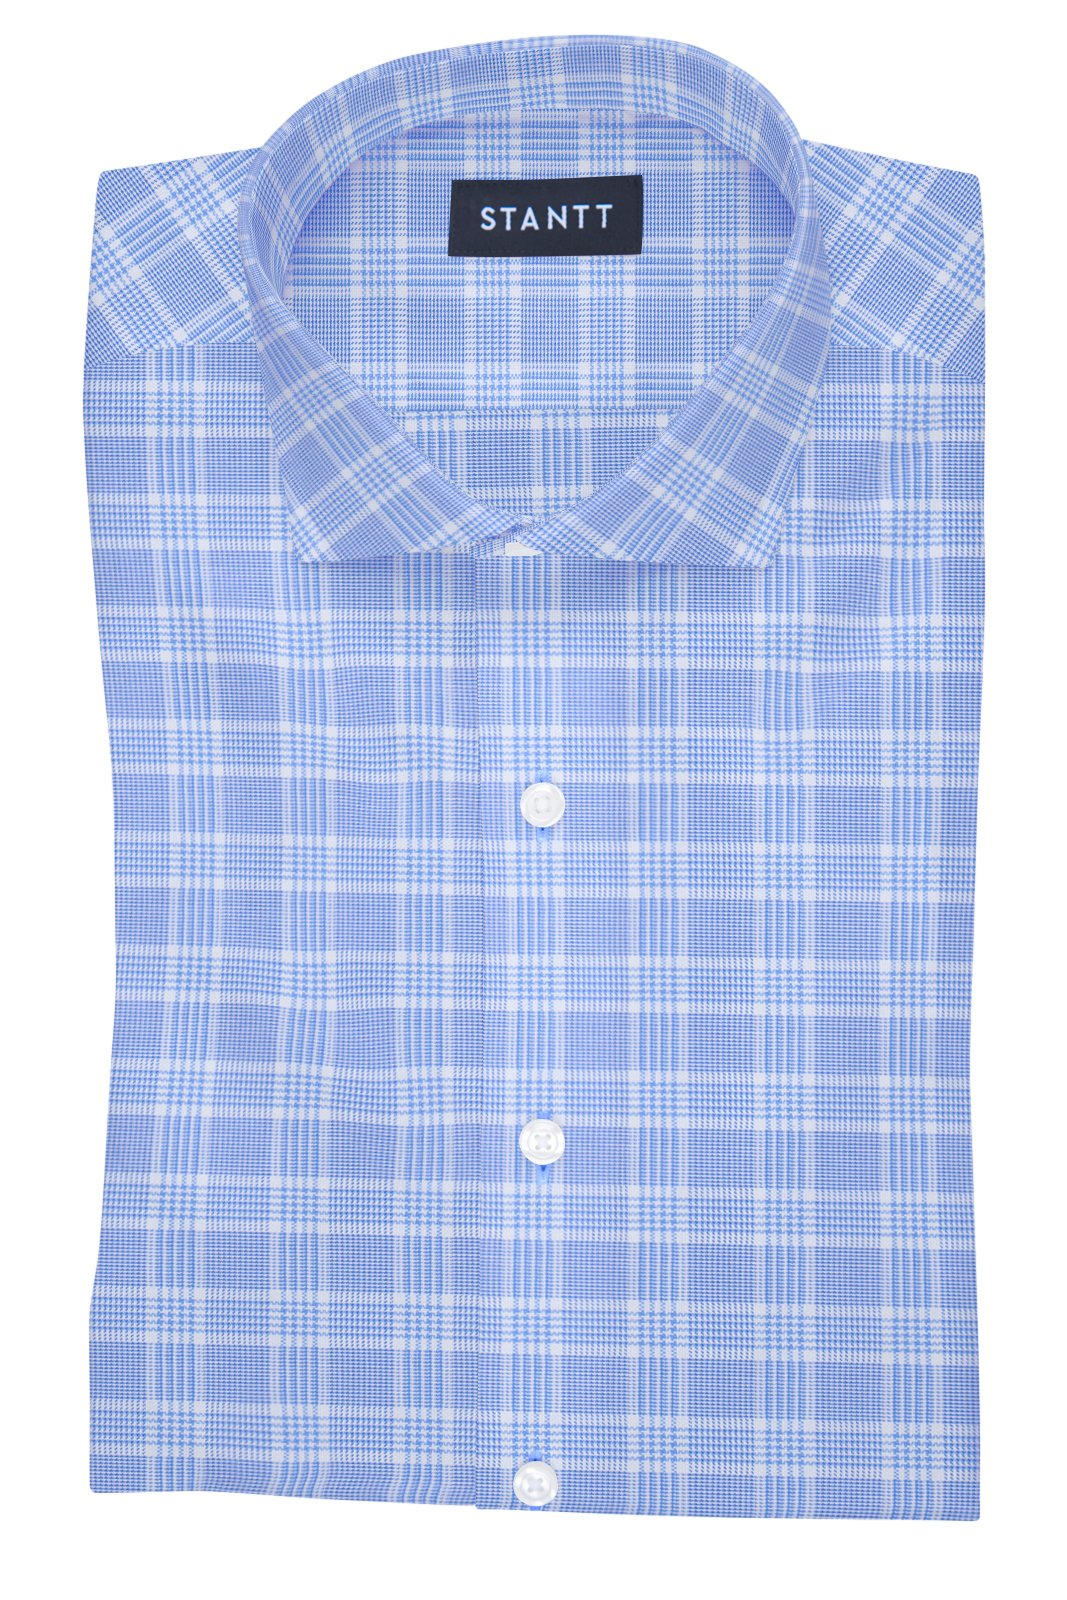 British Blue Prince of Wales Check: Cutaway Collar, French Cuff